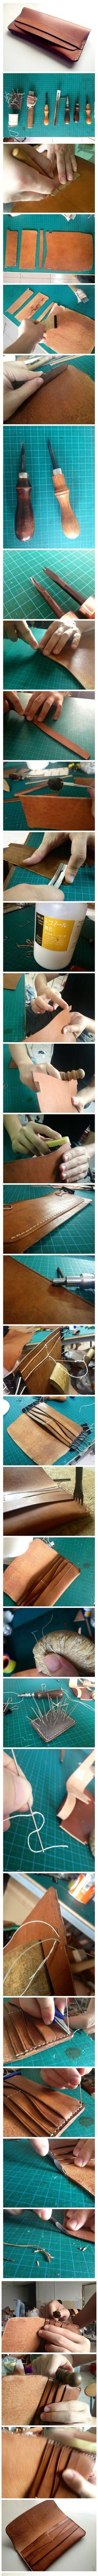 But such a good bag handmade Oh! More(Diy Bag Leather) Leather Art, Sewing Leather, Leather Pattern, Leather Design, Leather Tooling, Leather Clutch, Leather Purses, Leather Handbags, Crea Cuir